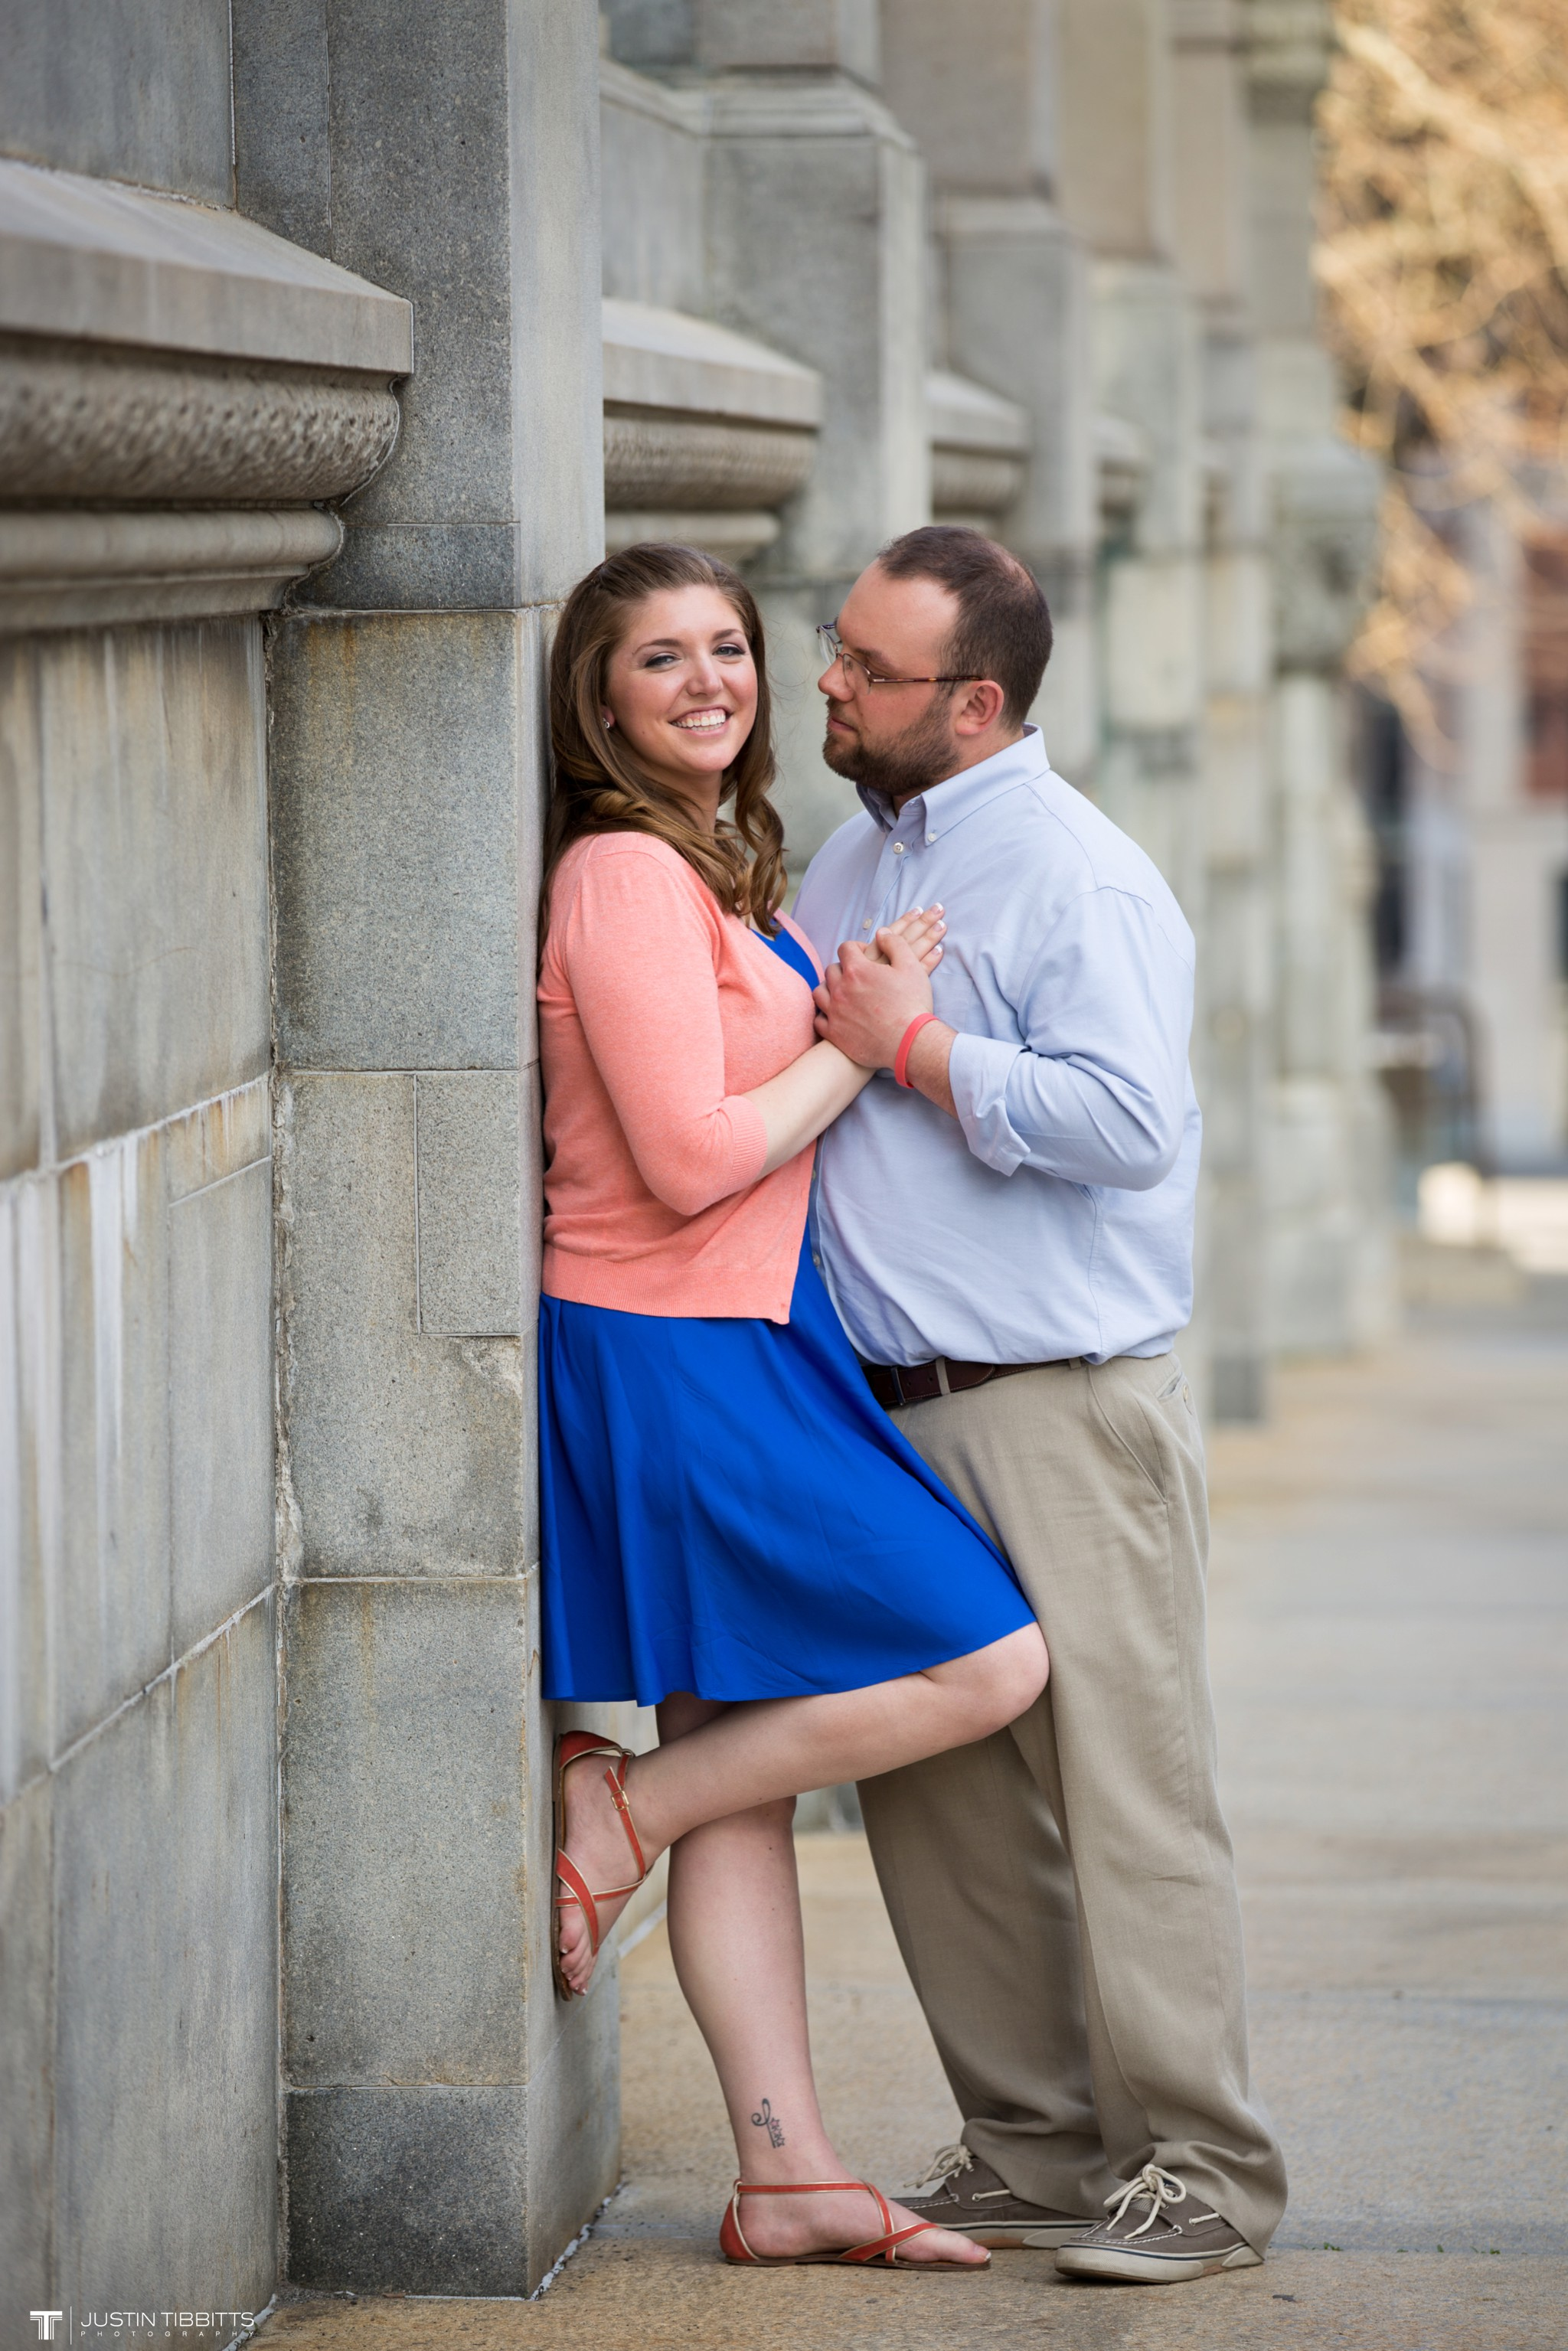 Justin Tibbitts Photography Sara and Erics Albany NY Engagement Photoshoot-46